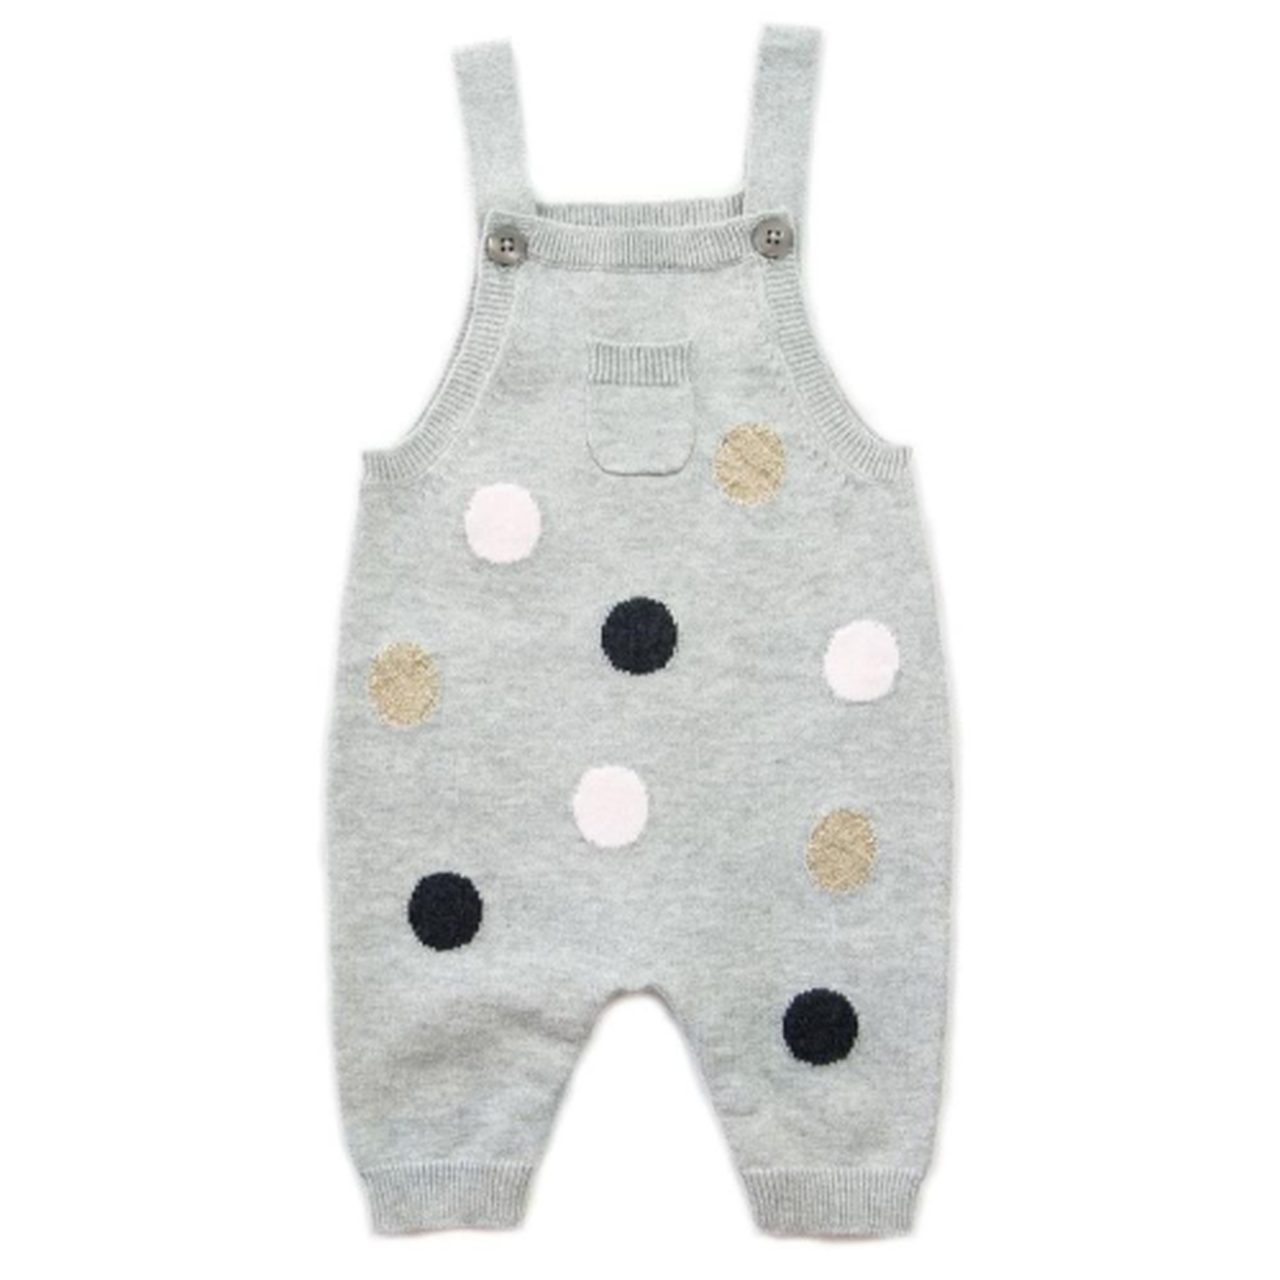 BEANSTORK - Big Spot Overall Grey / Marle